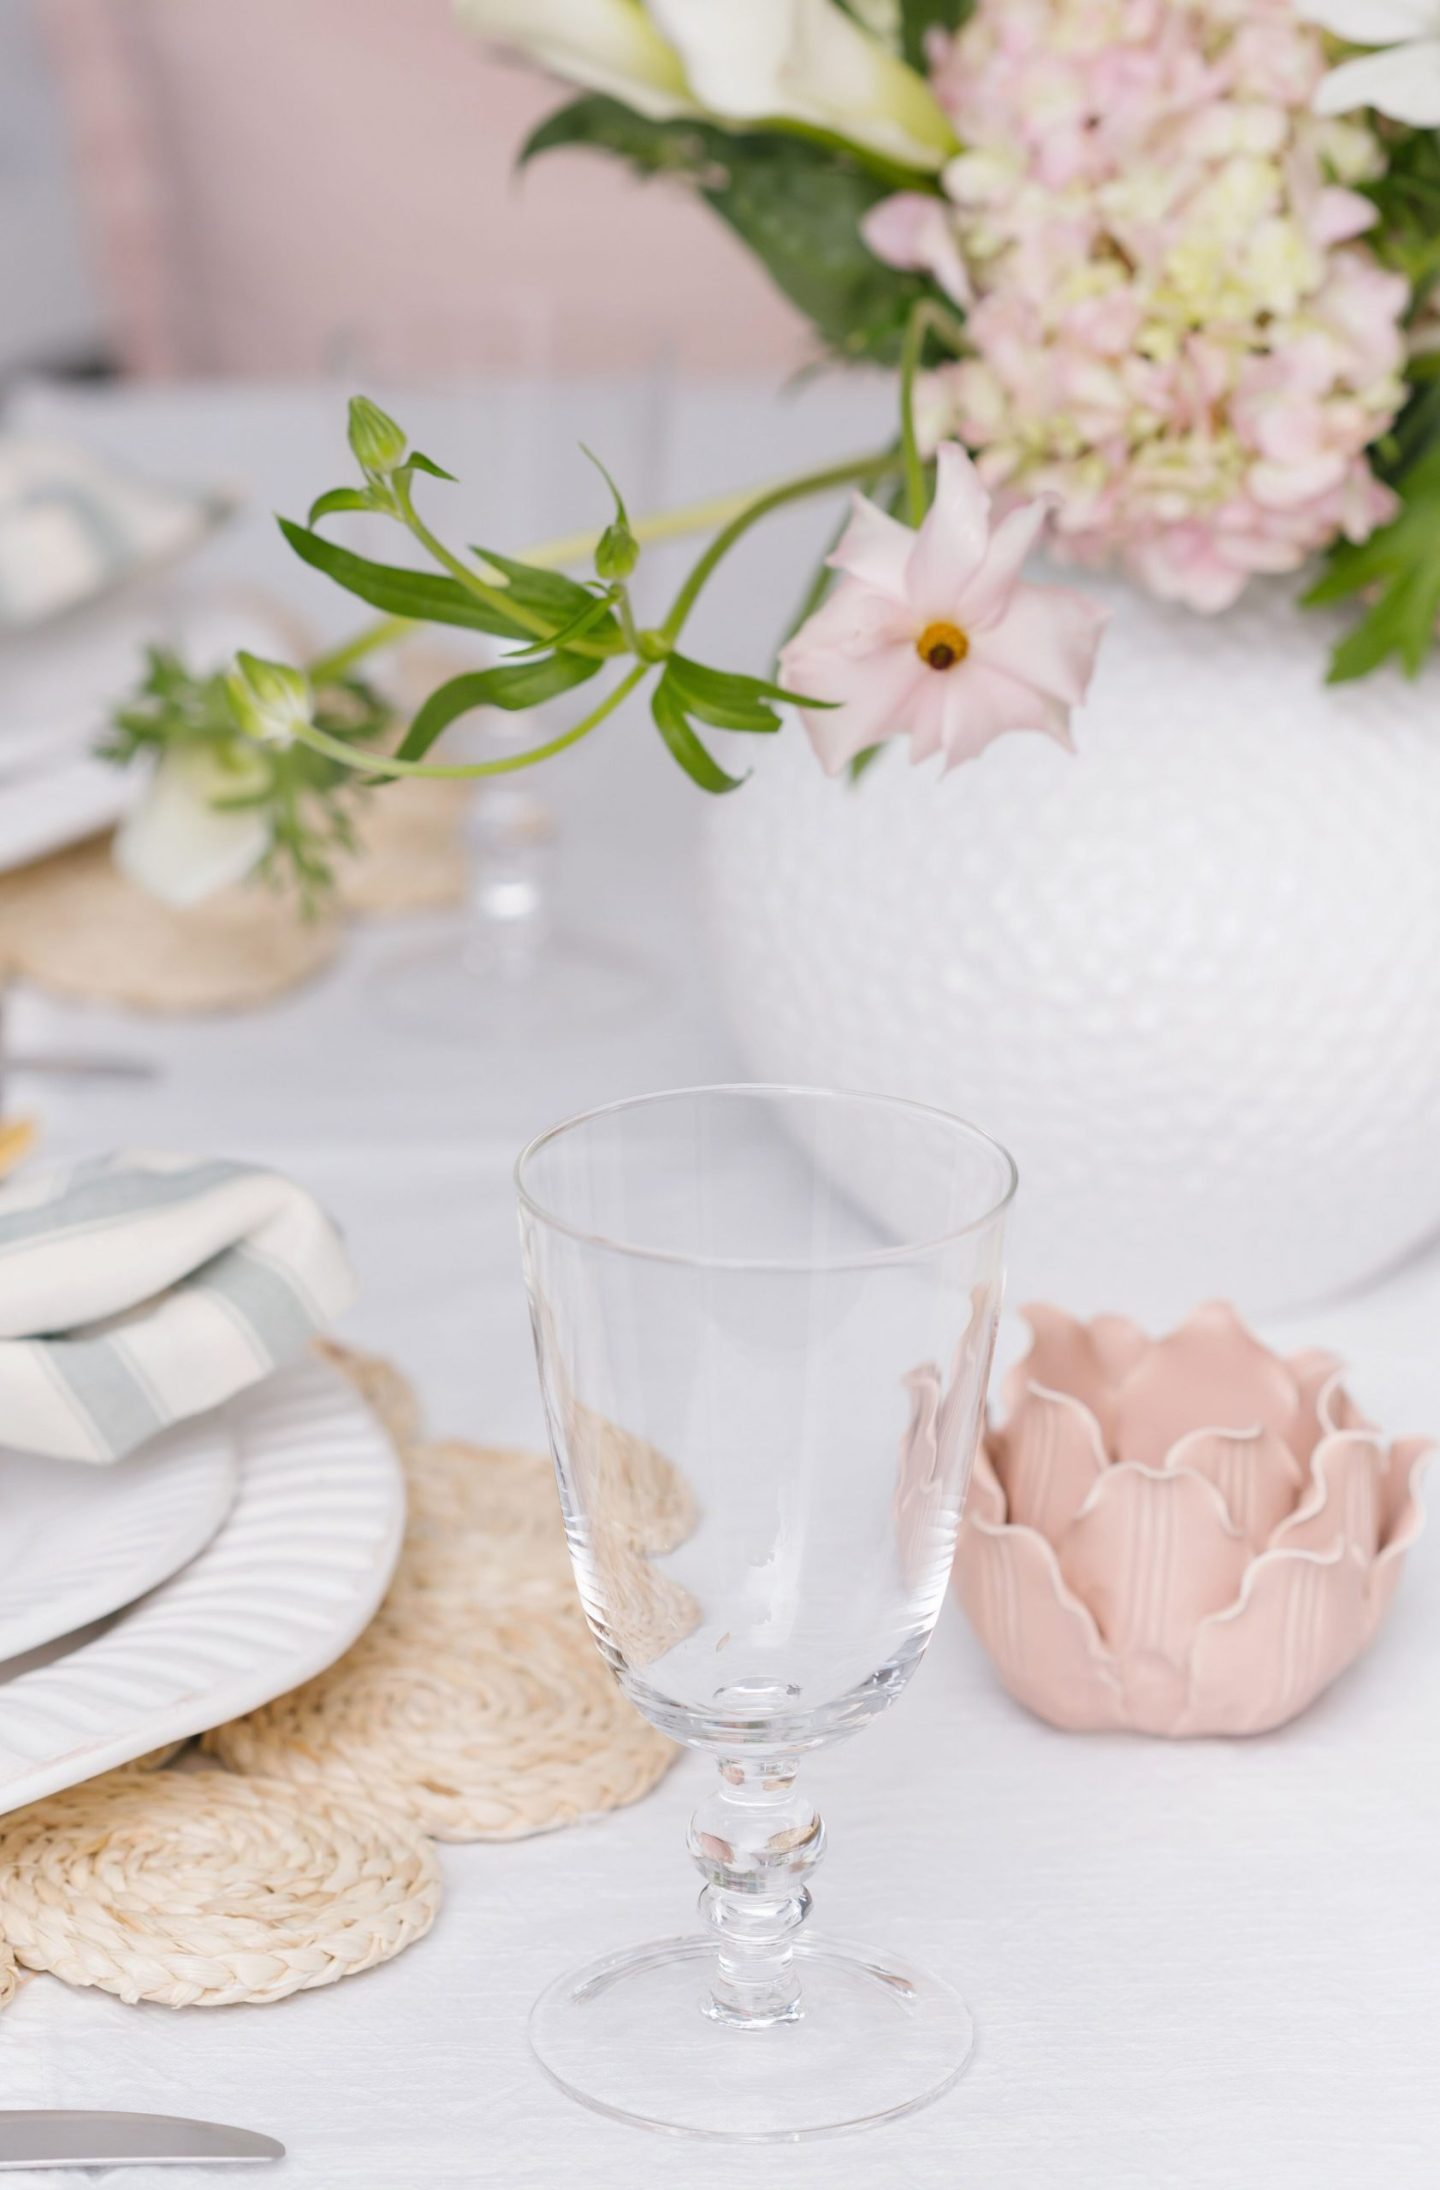 Fresh and Floral Spring Table